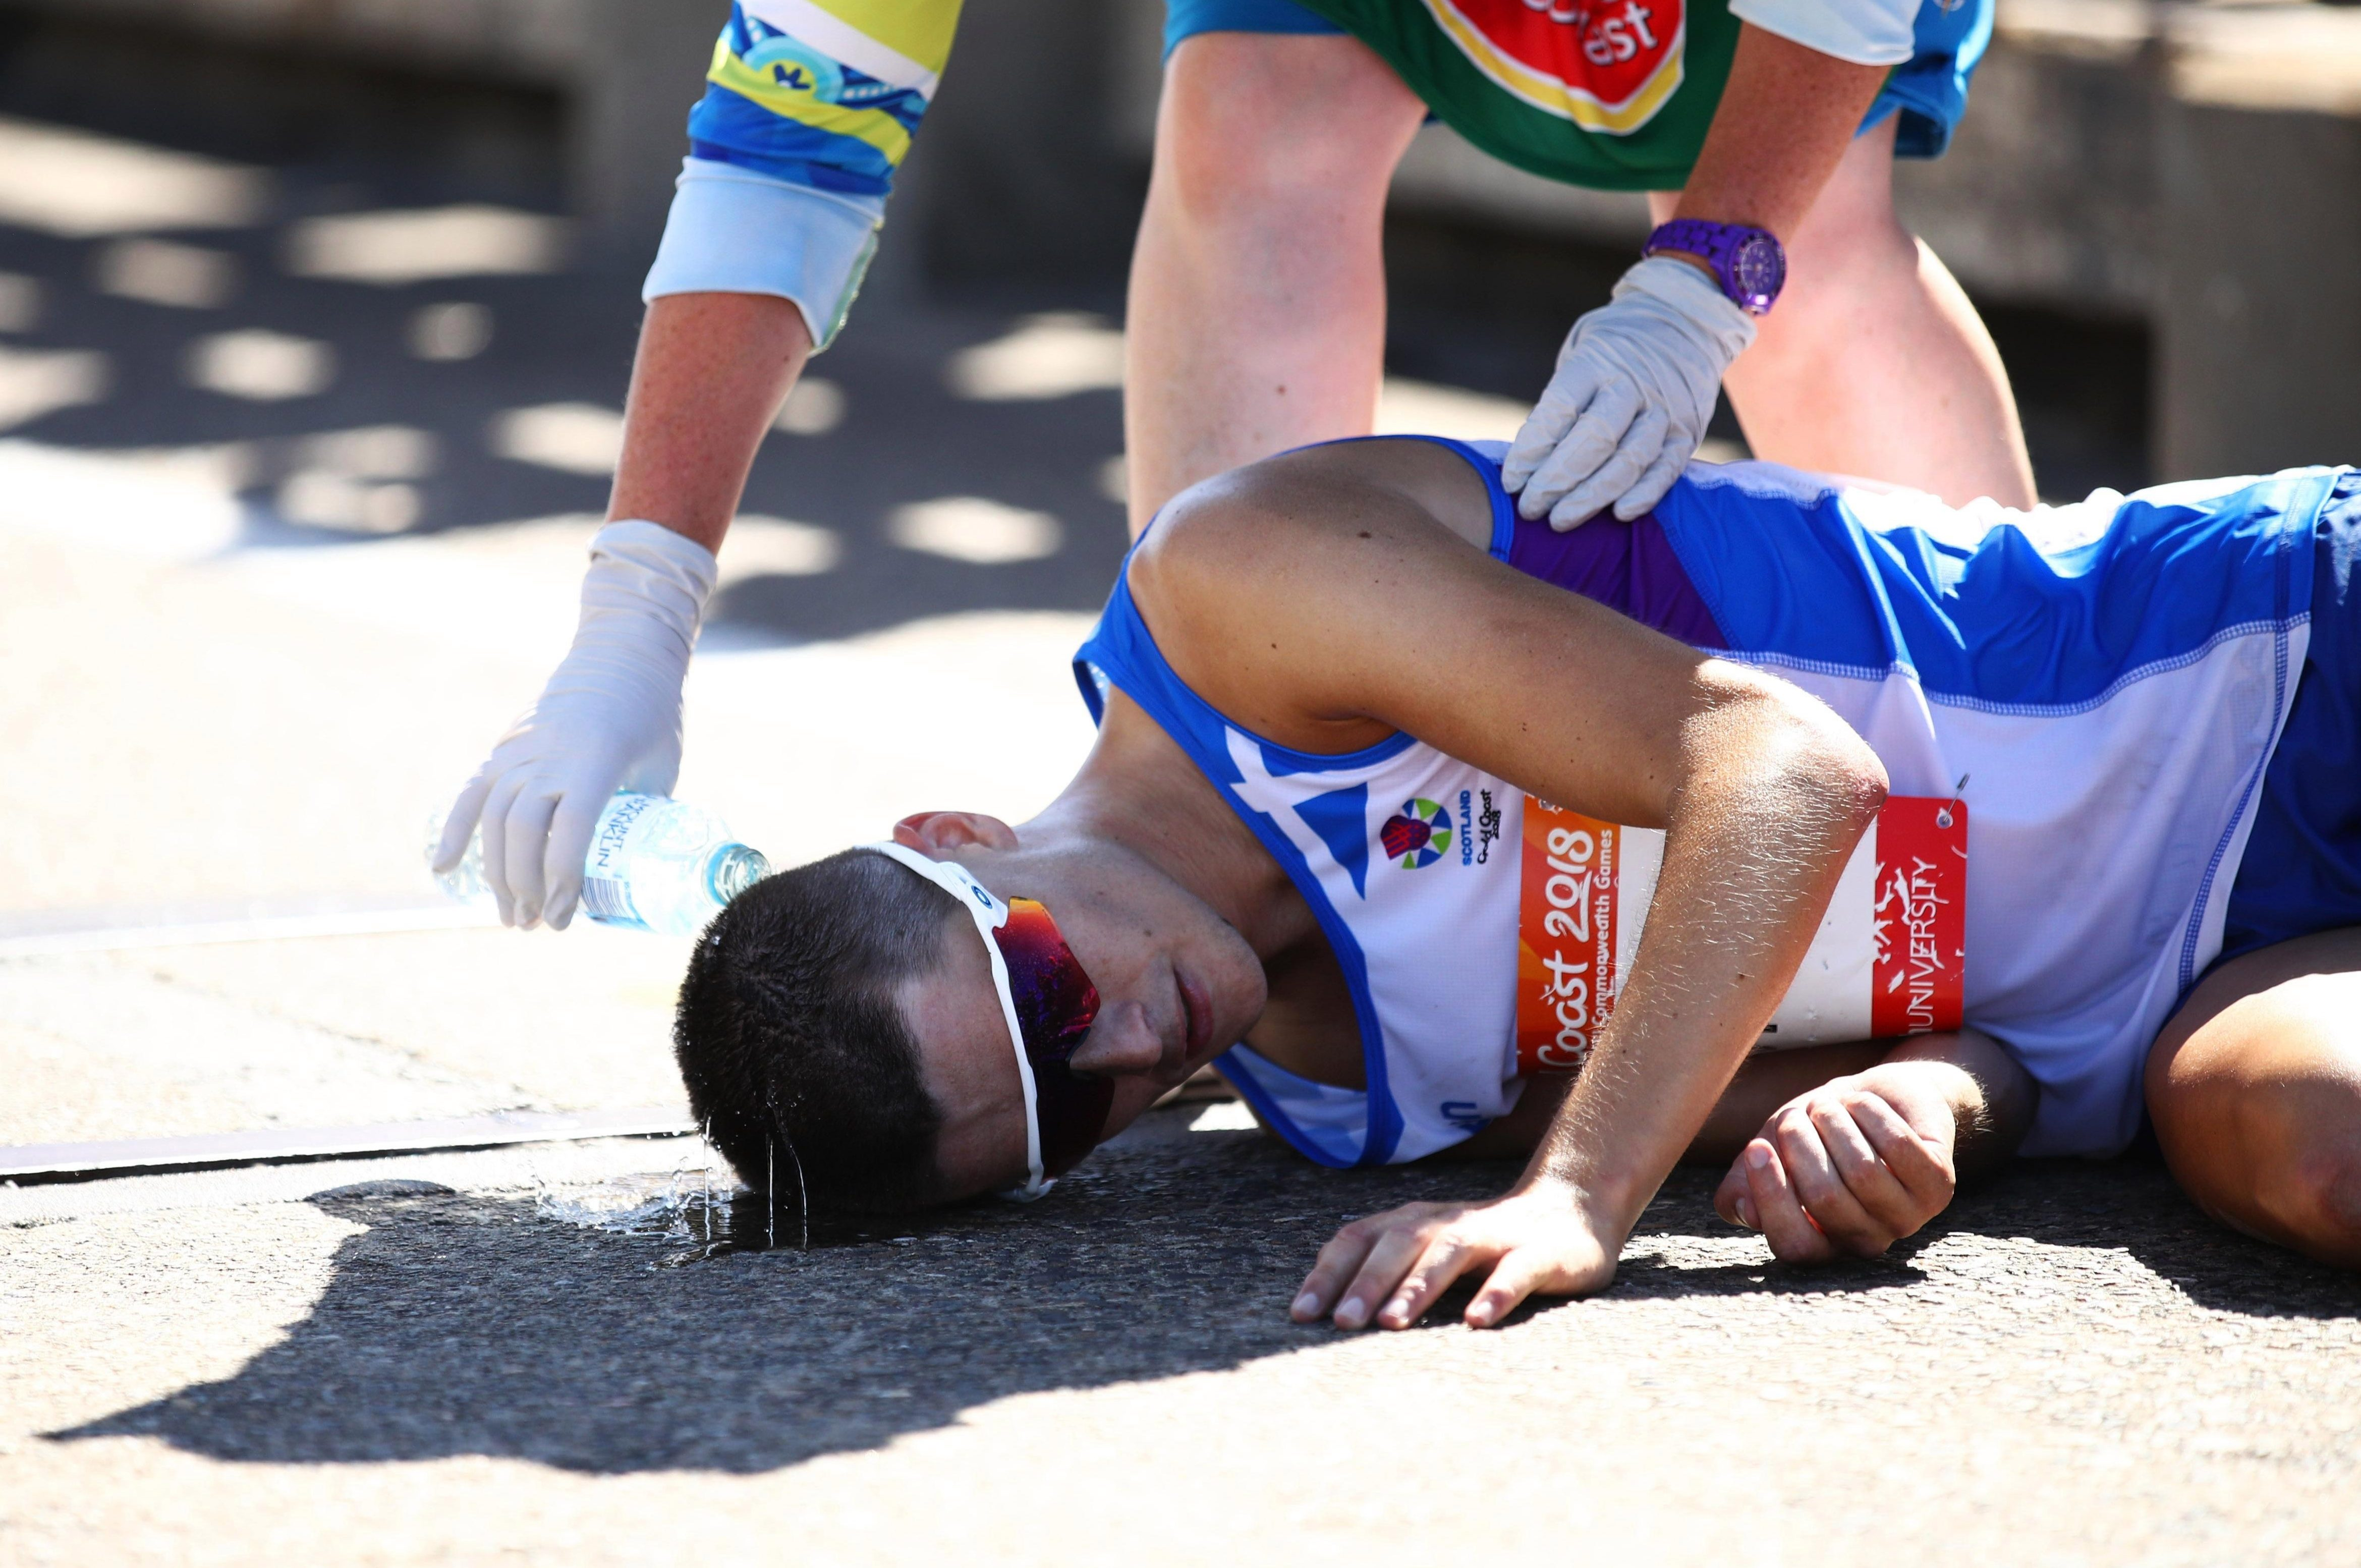 Callum Hawkins was leading the marathon when he dramatically collapsed